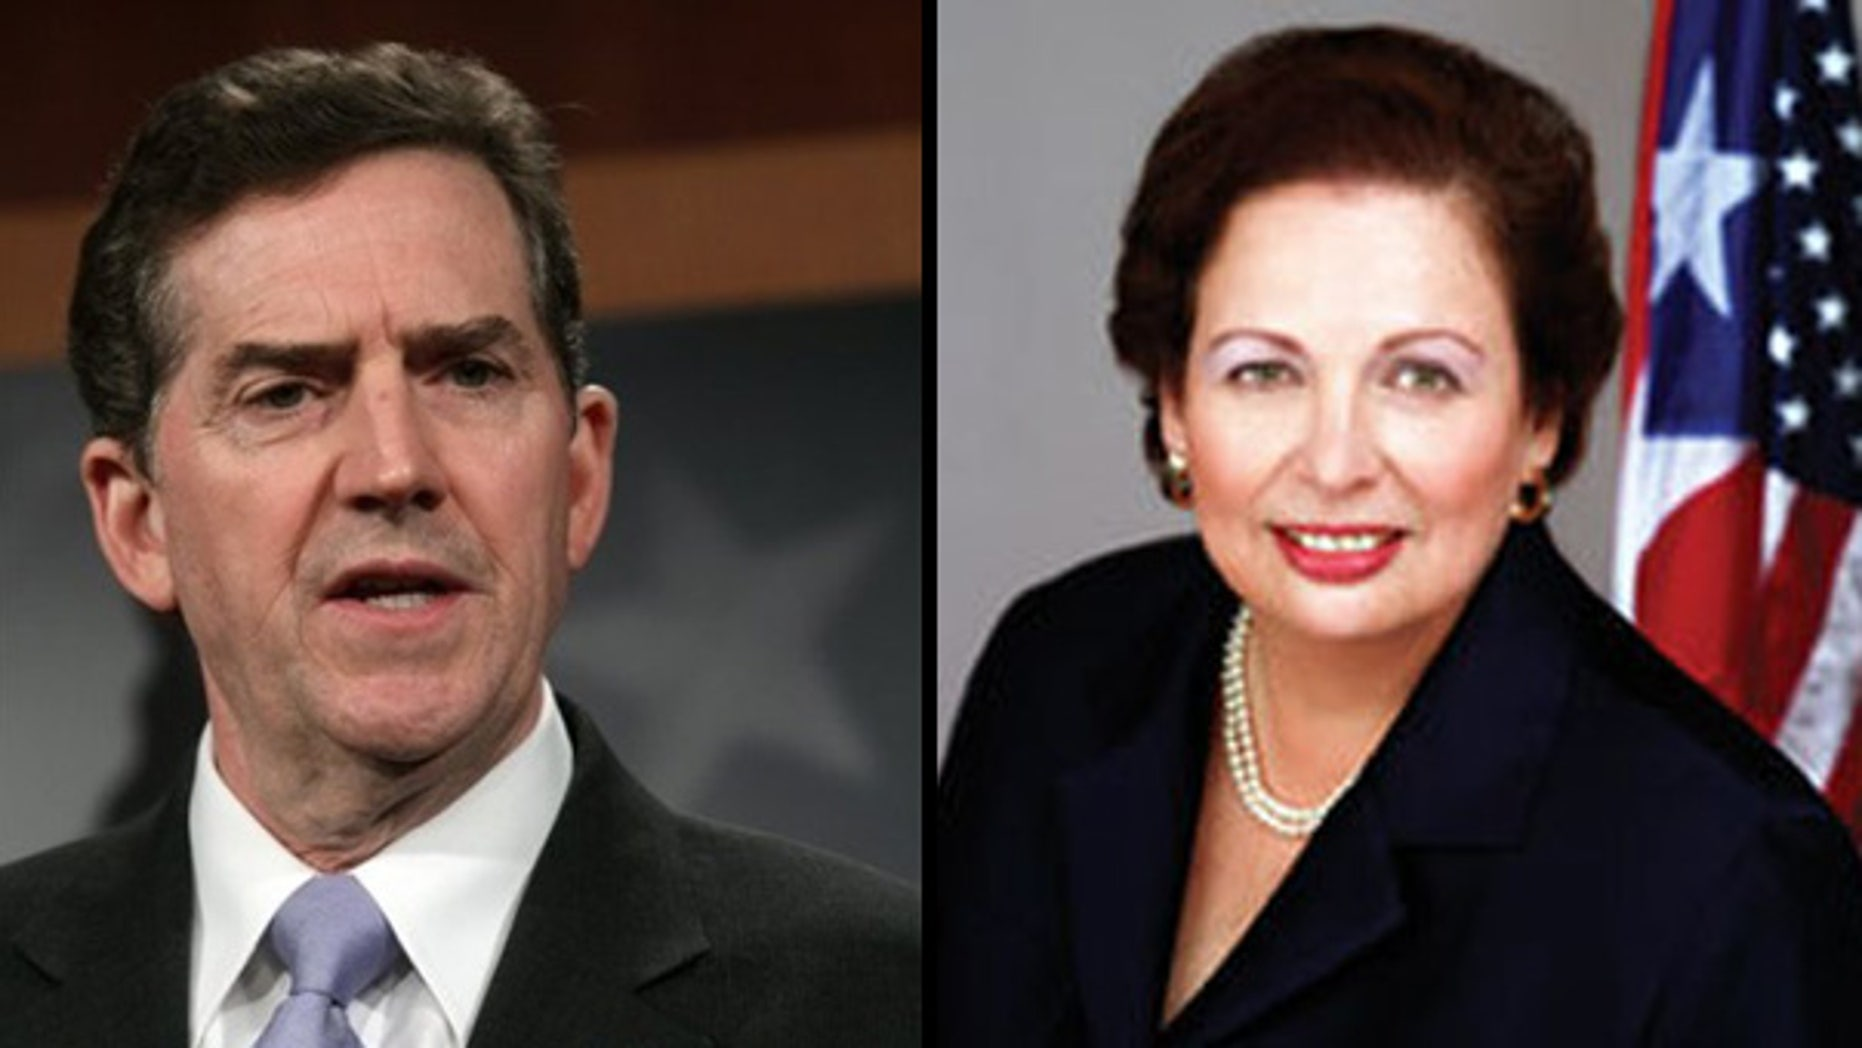 Sen. Jim DeMint, R-S.C. (r) forced the Senate Foreign Relations Committee to delay a hearing scheduled this week on the nomination of Mari Carmen Aponte (l) until next Wednesday. (AP/U.S. GOV)